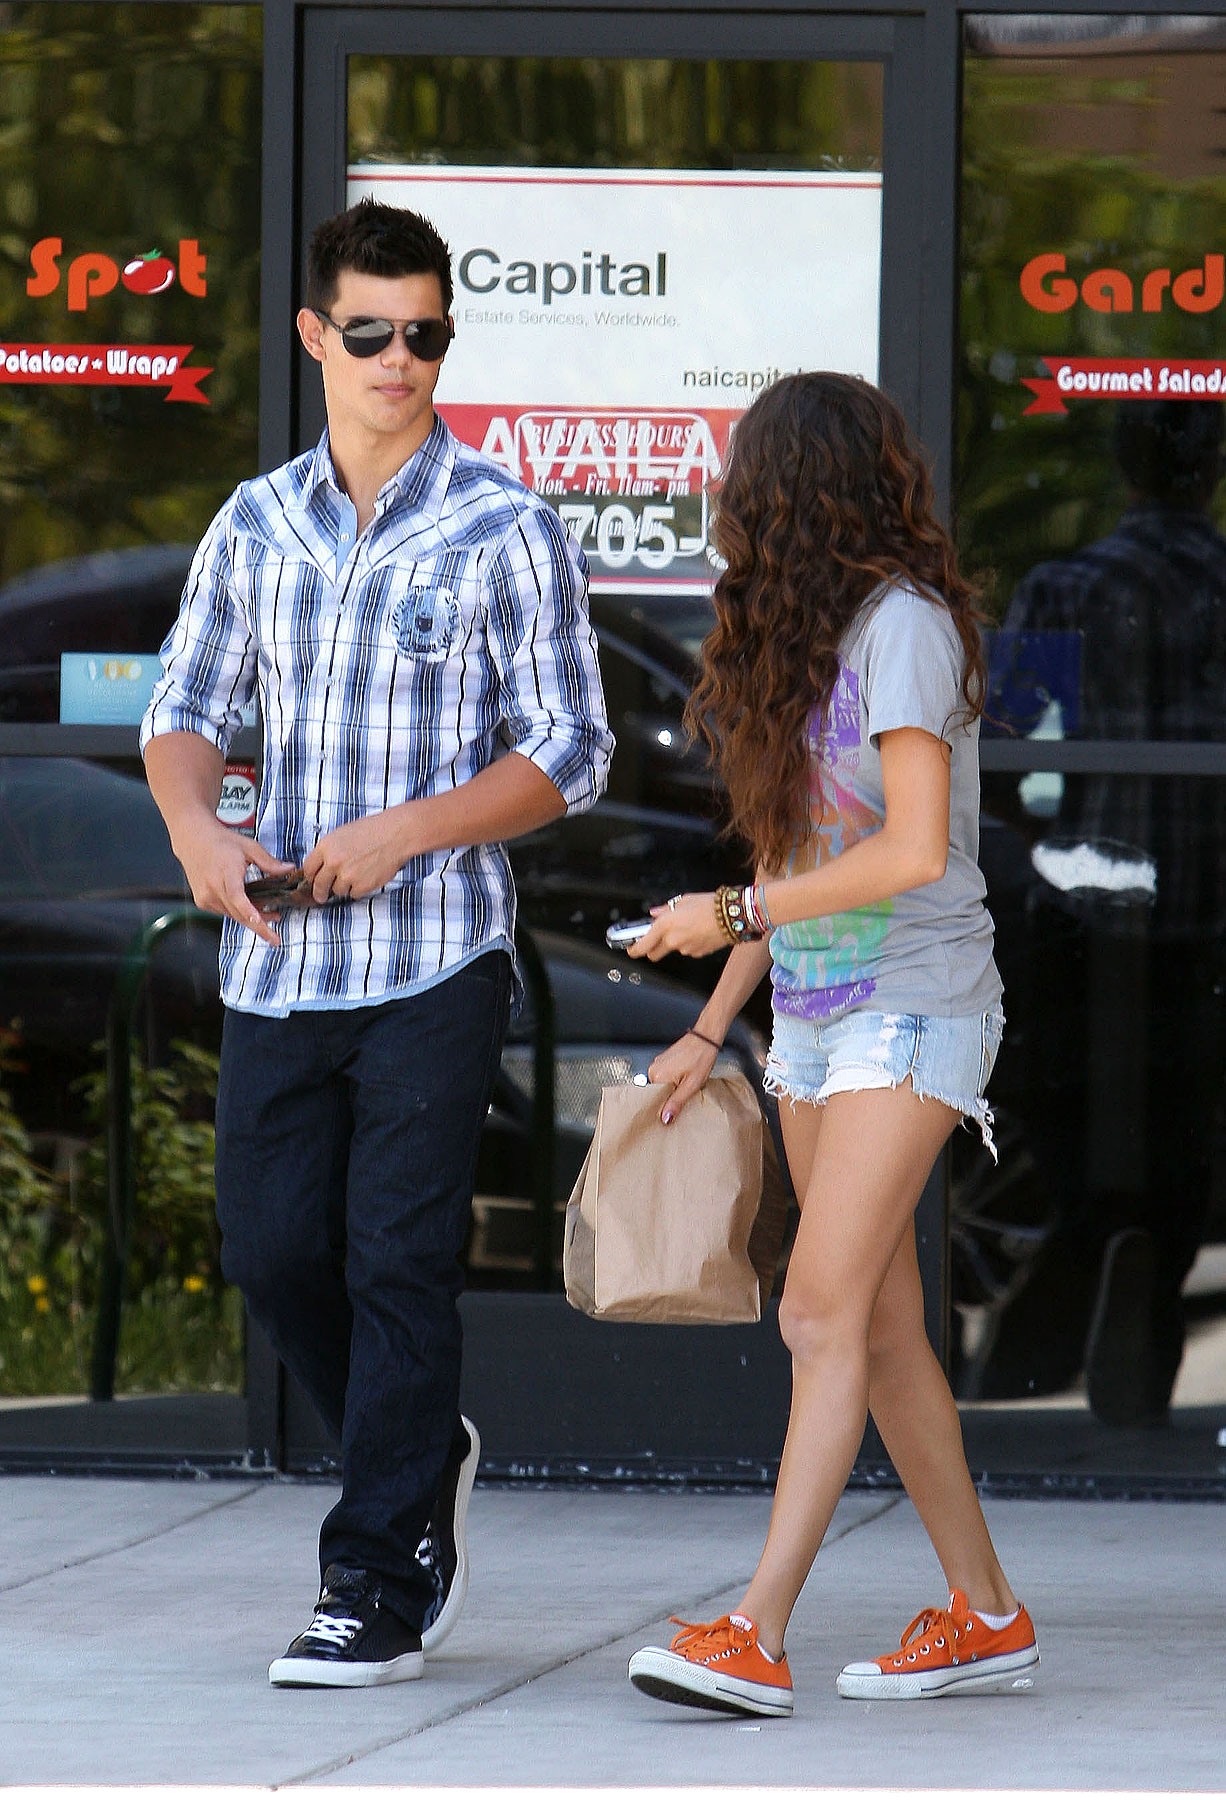 PHOTO GALLERY: Taylor Lautner Visits Chipotle